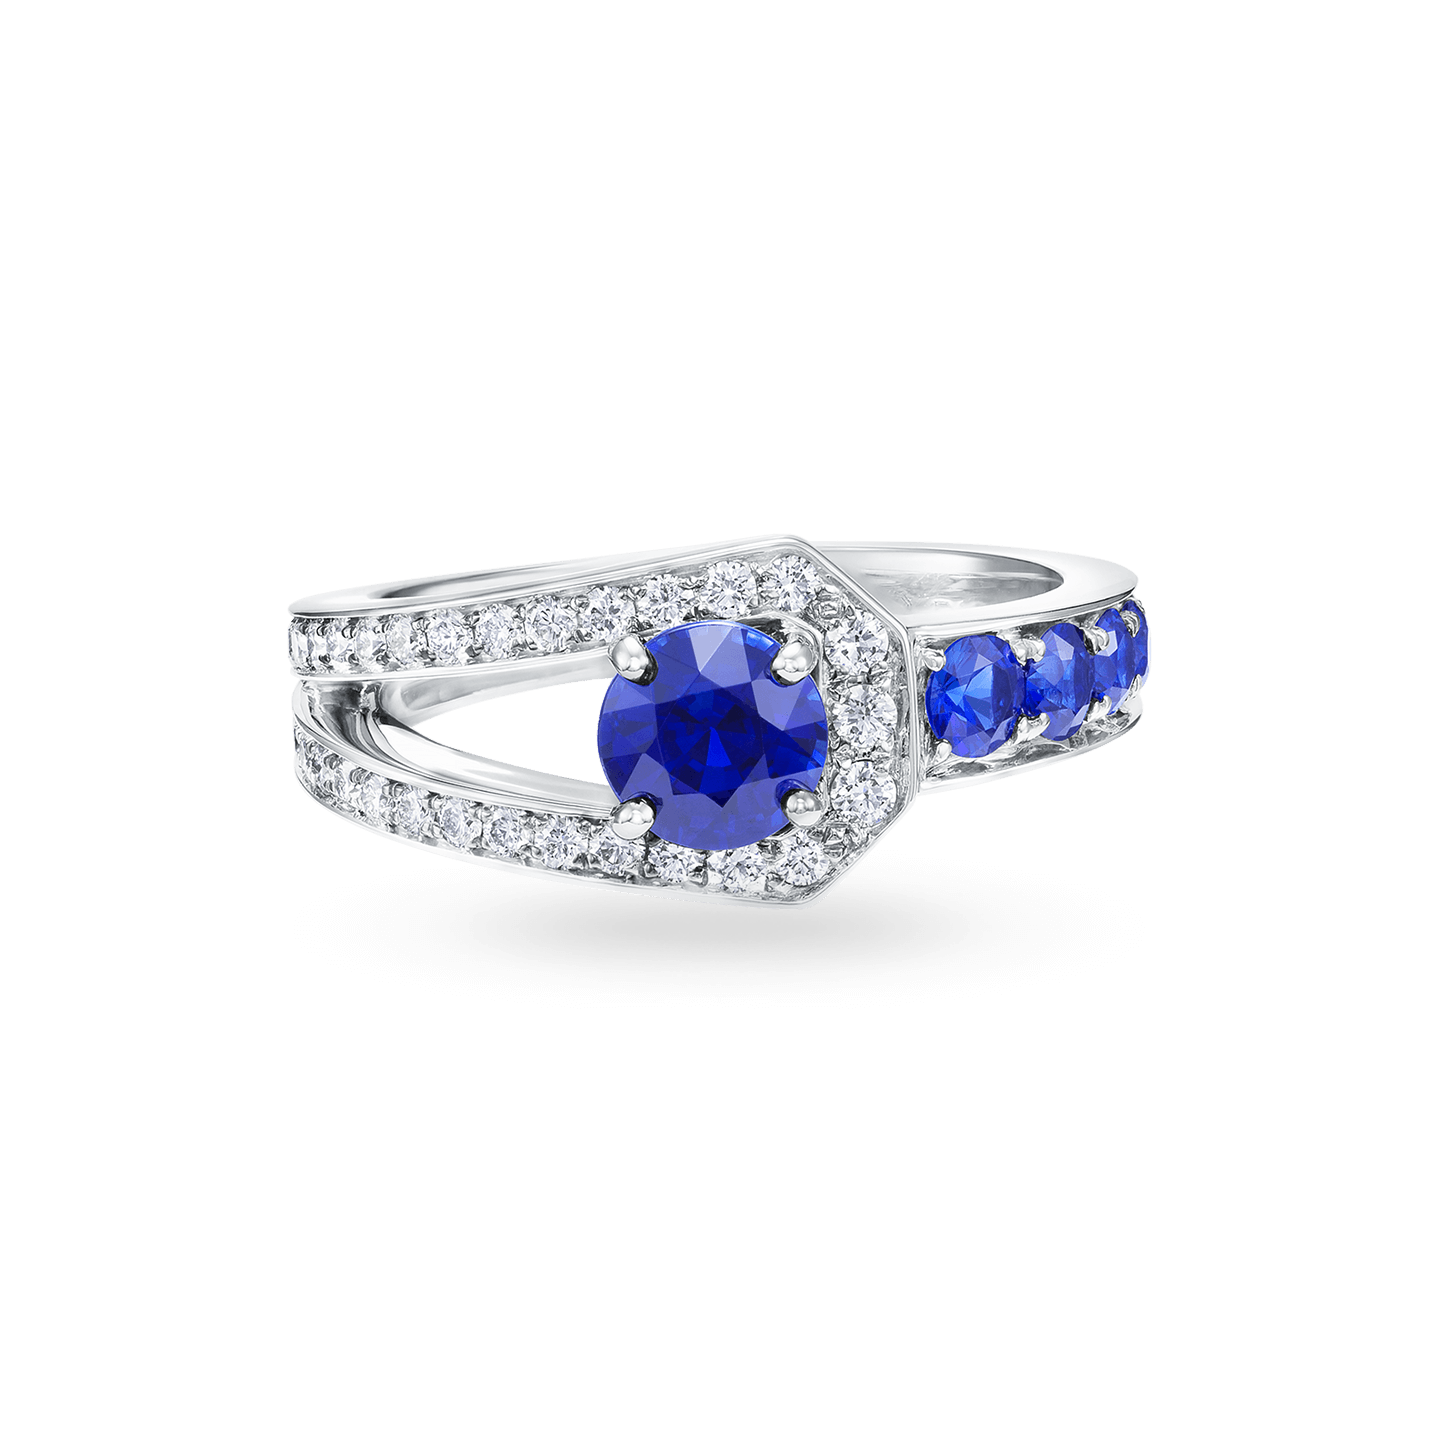 Sapphire and Diamond Ring, Product Image 1